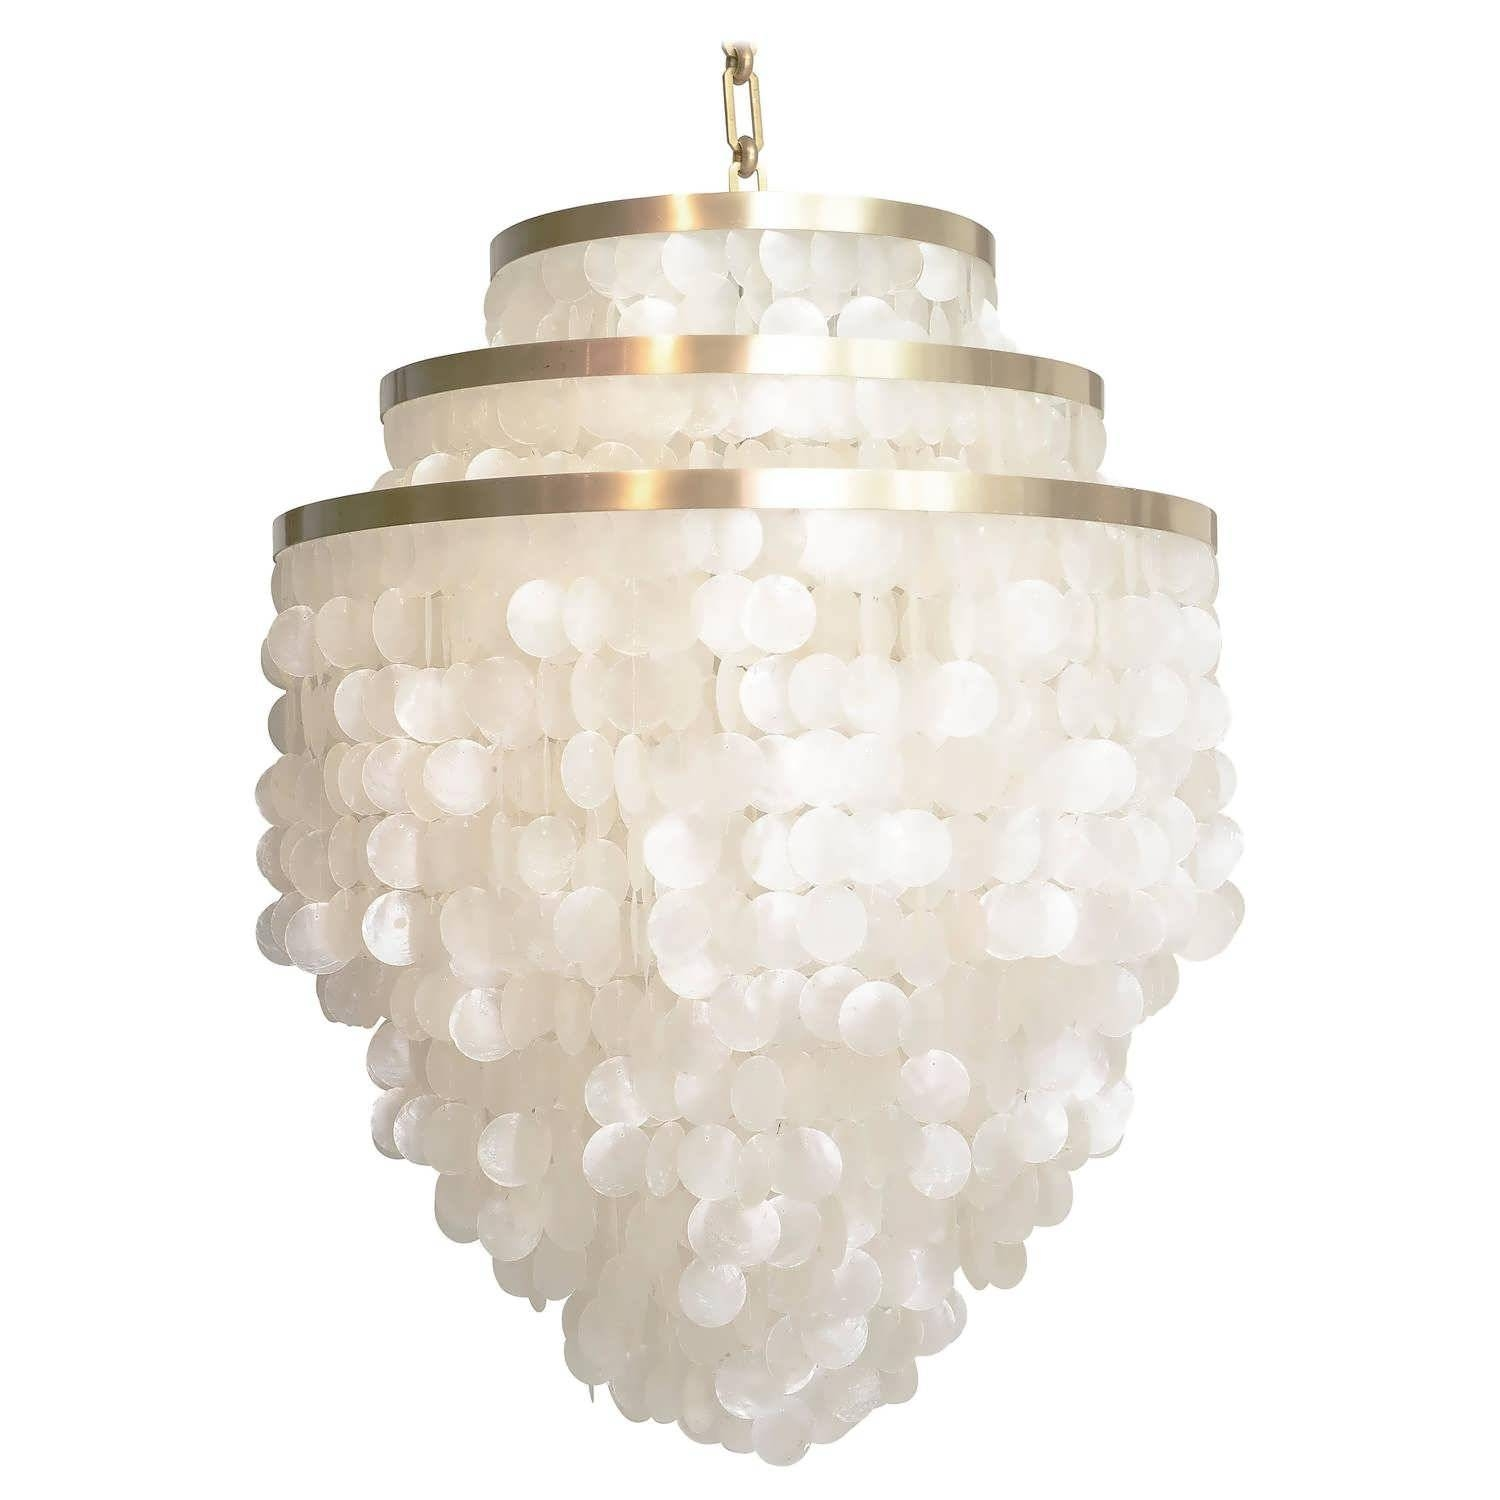 Chandeliers Design : Awesome Silver Chandelier Copper Capiz Shell Pertaining To Shell Pendant Lights (View 3 of 15)